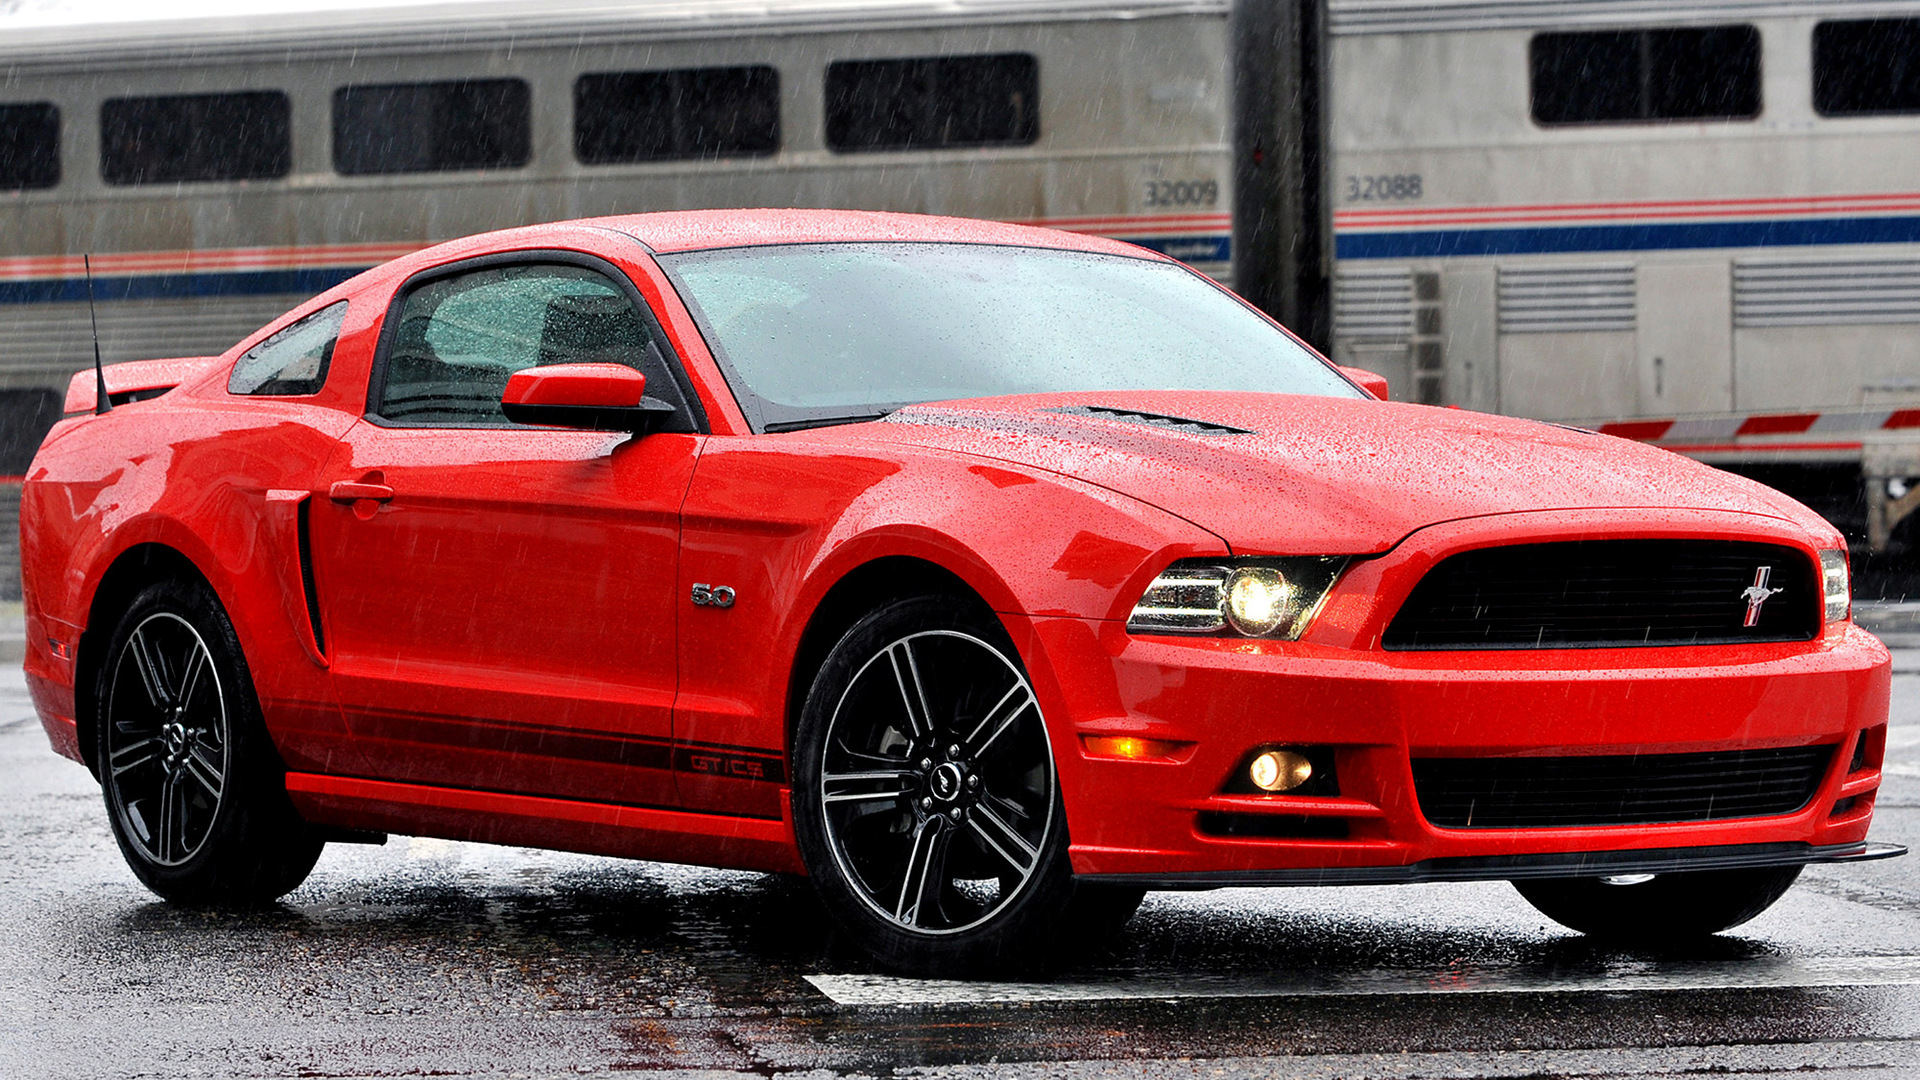 2012 ford mustang 5 0 gt california special wallpapers. Black Bedroom Furniture Sets. Home Design Ideas